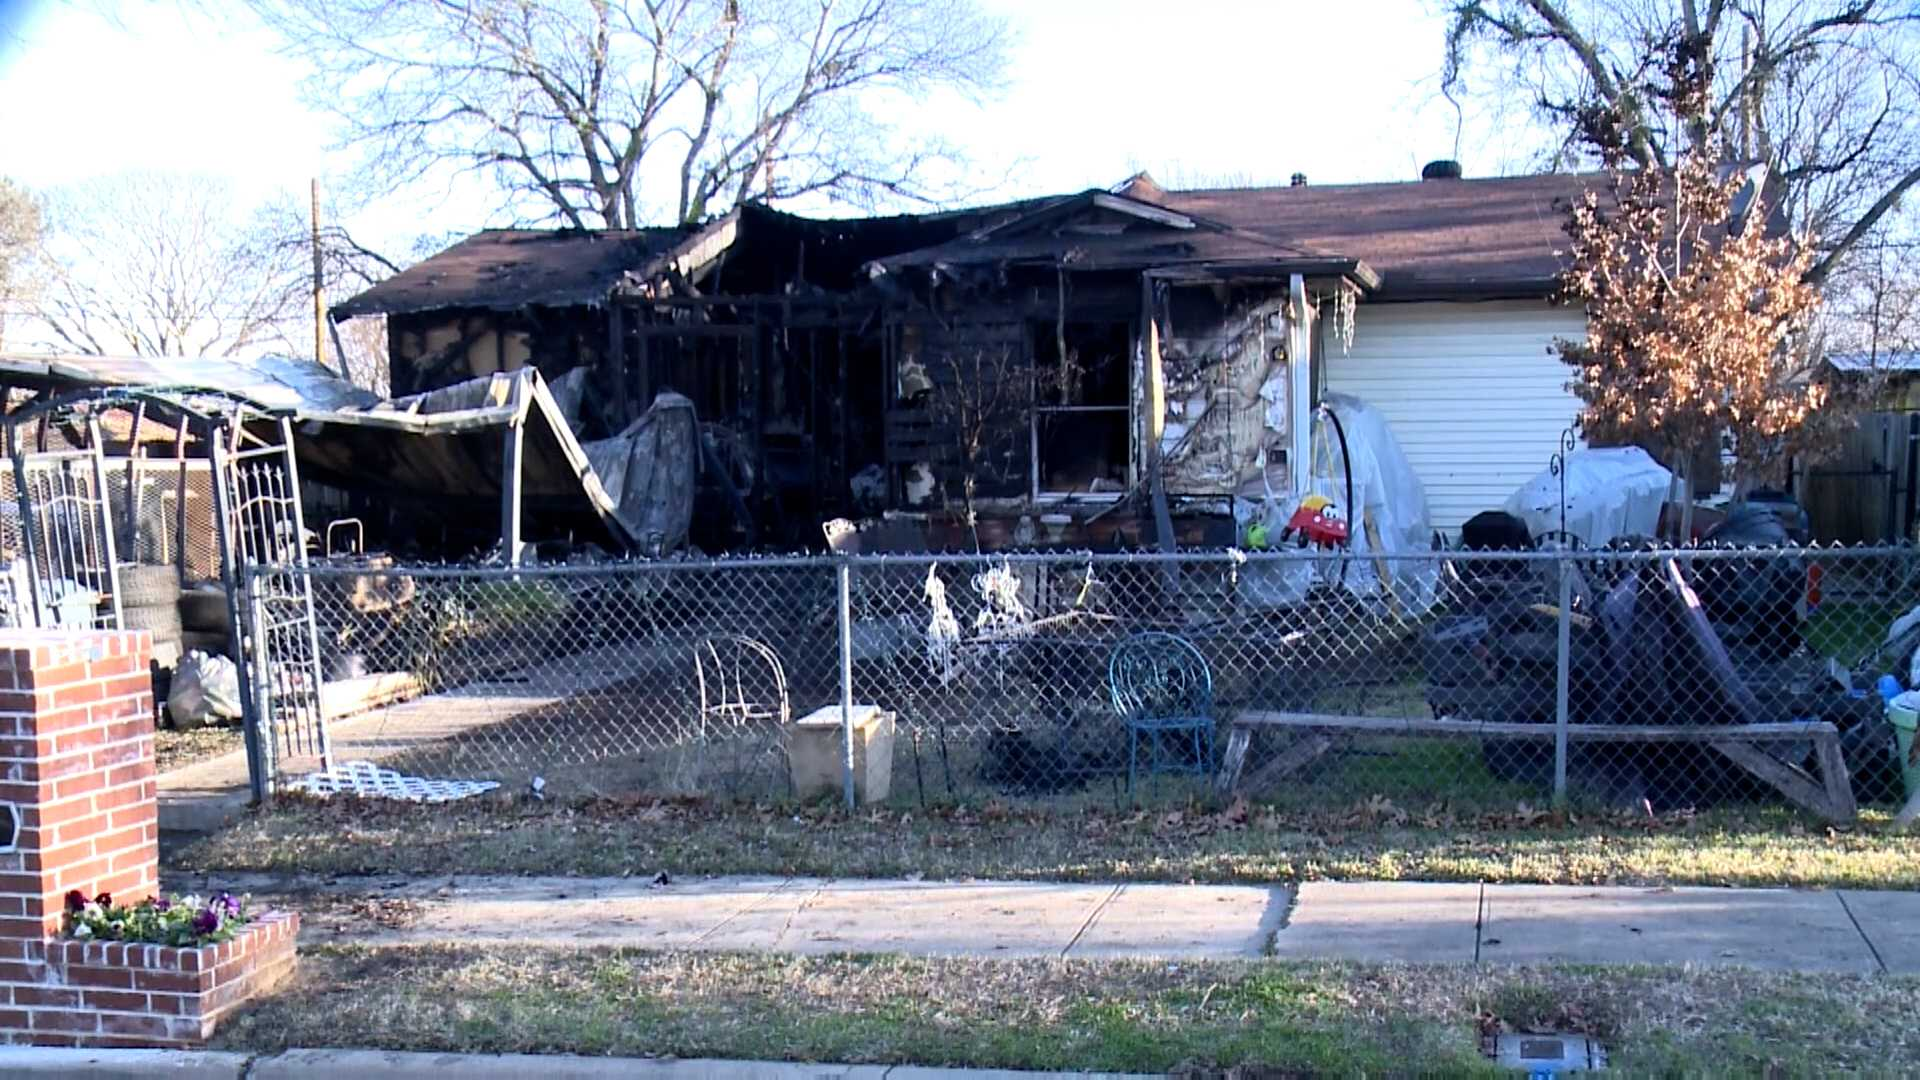 Texas teen saves her family when they lost sense of smell from Covid-19 and didn't realize house was on fire 2